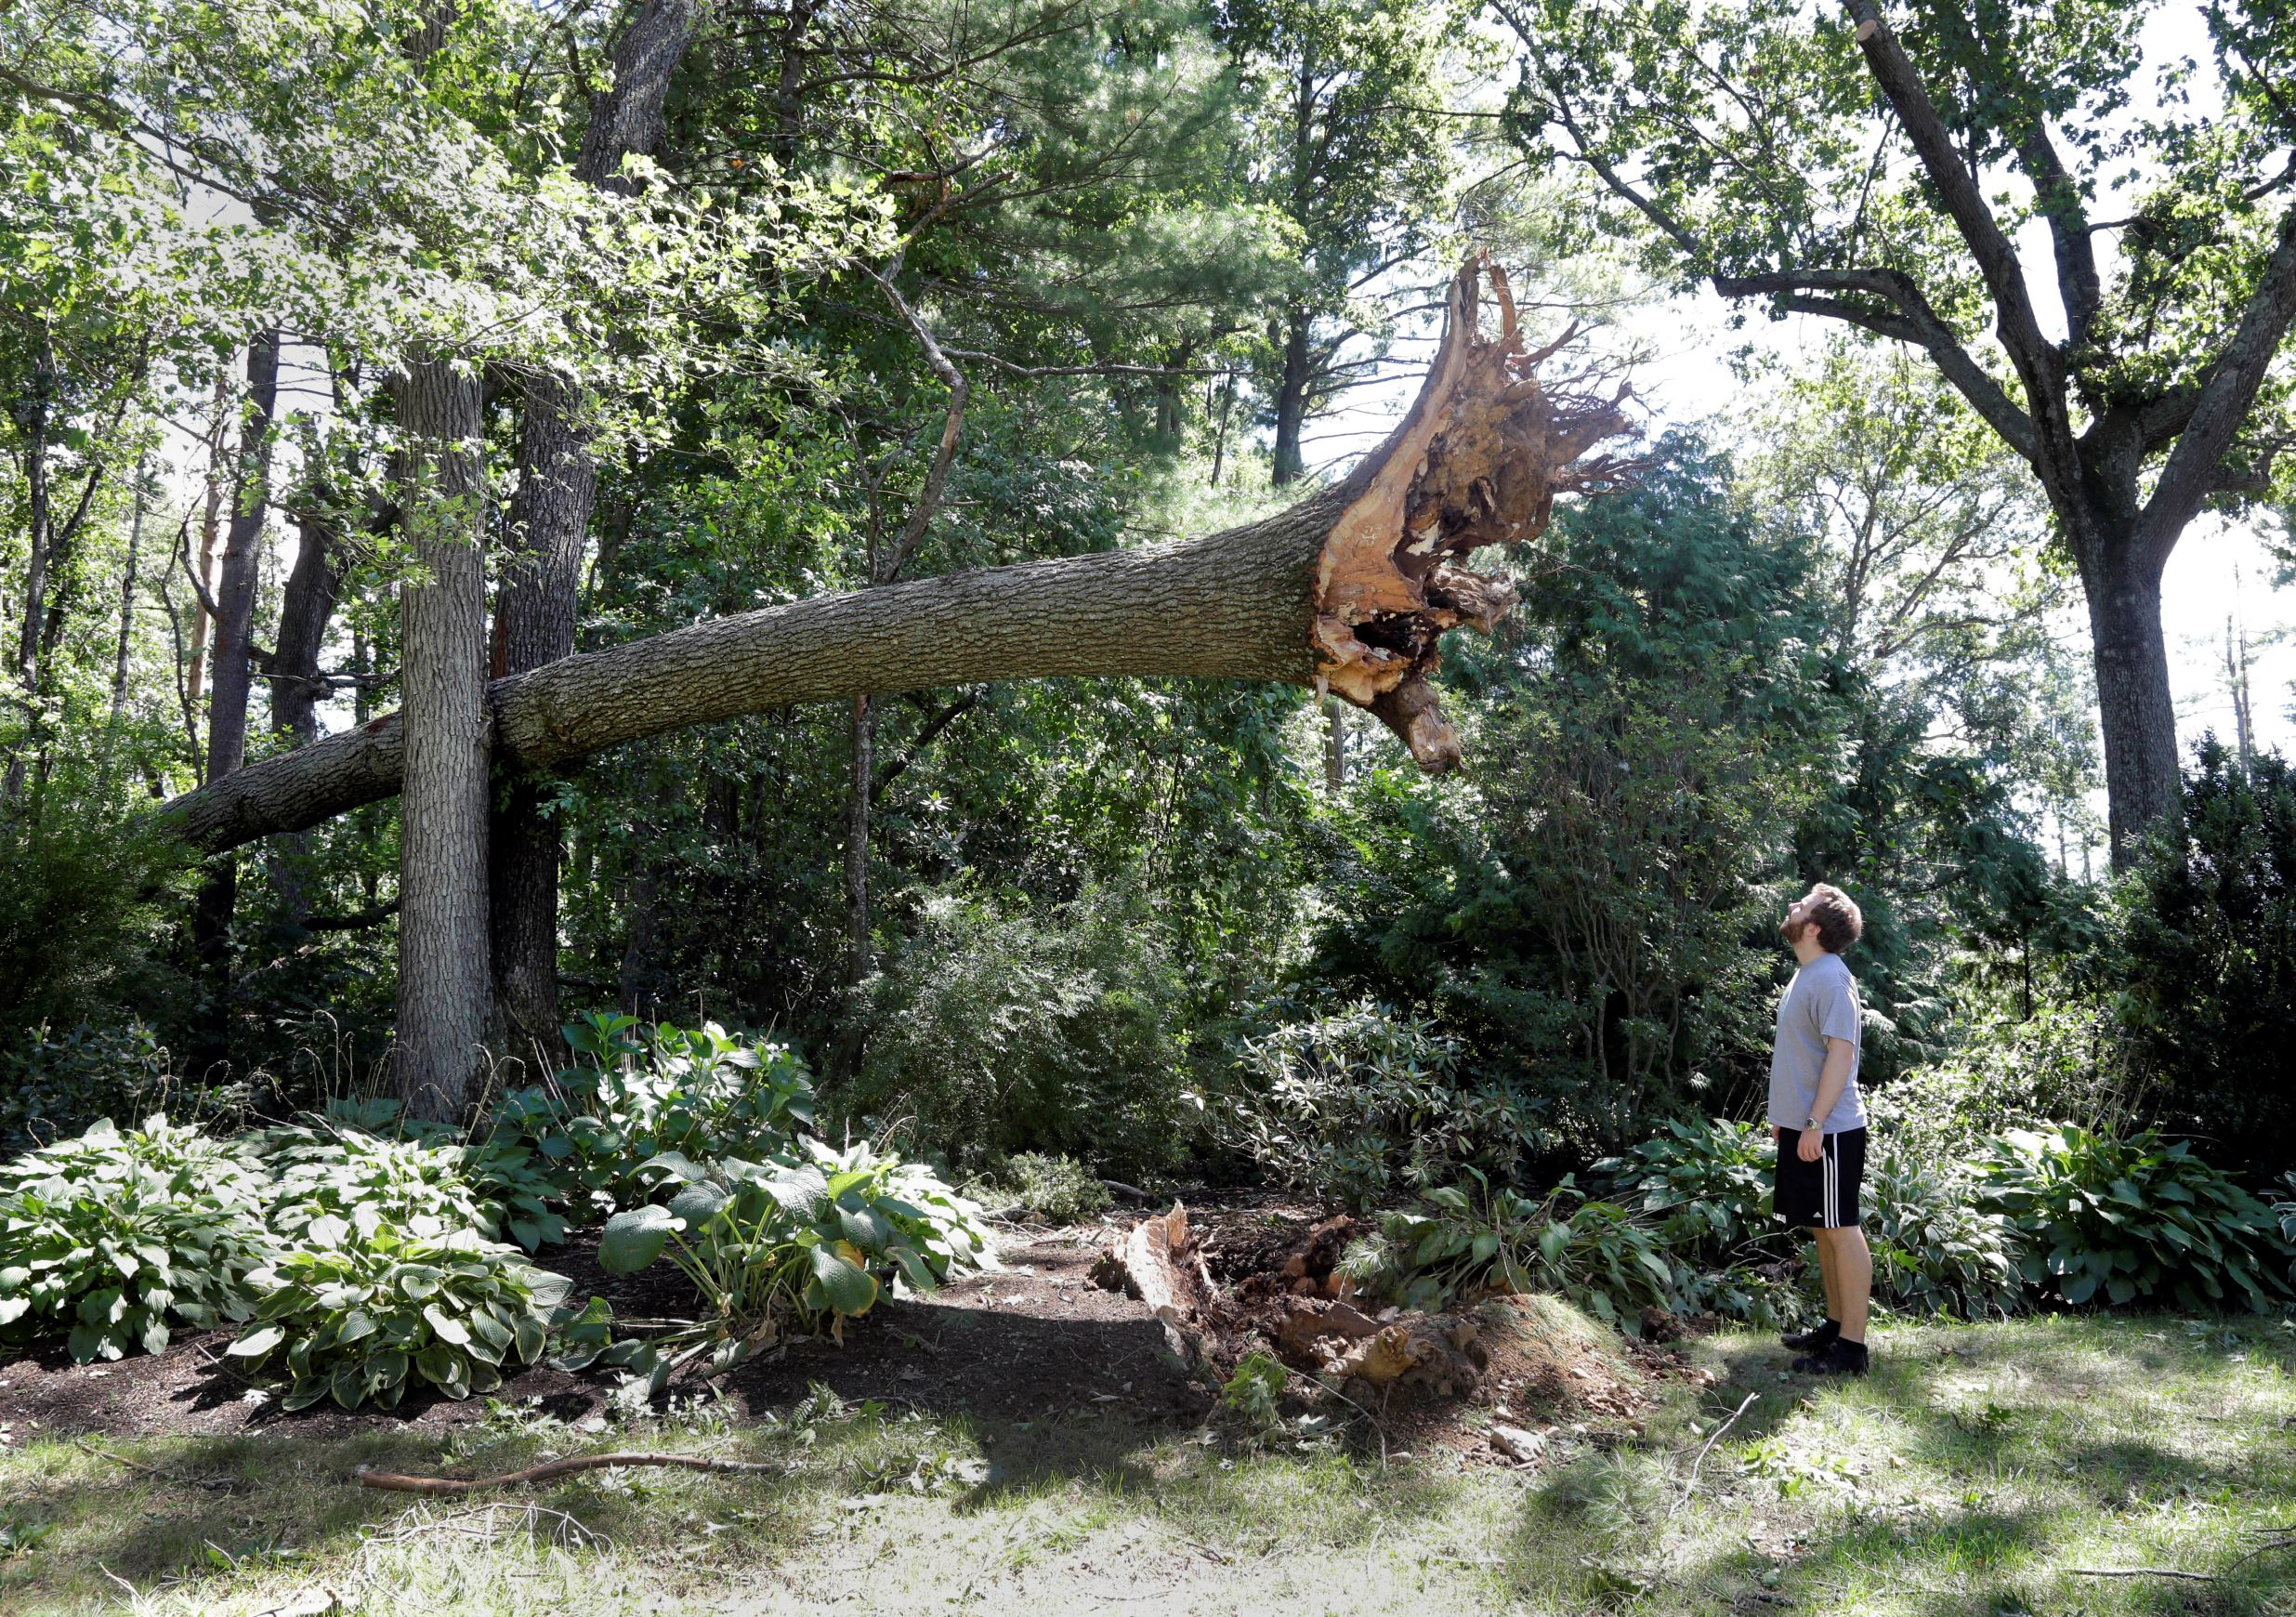 Слайд 75 из 86: Ian Thompson looks up at a large tree uprooted in his neighborhood Monday, Aug. 22, 2016, in Concord, Mass. A tornado briefly touched down in the historic Massachusetts town, uprooting trees, knocking out power, and causing damage to dozens of homes. There were no reports of injuries. (AP Photo/Elise Amendola)